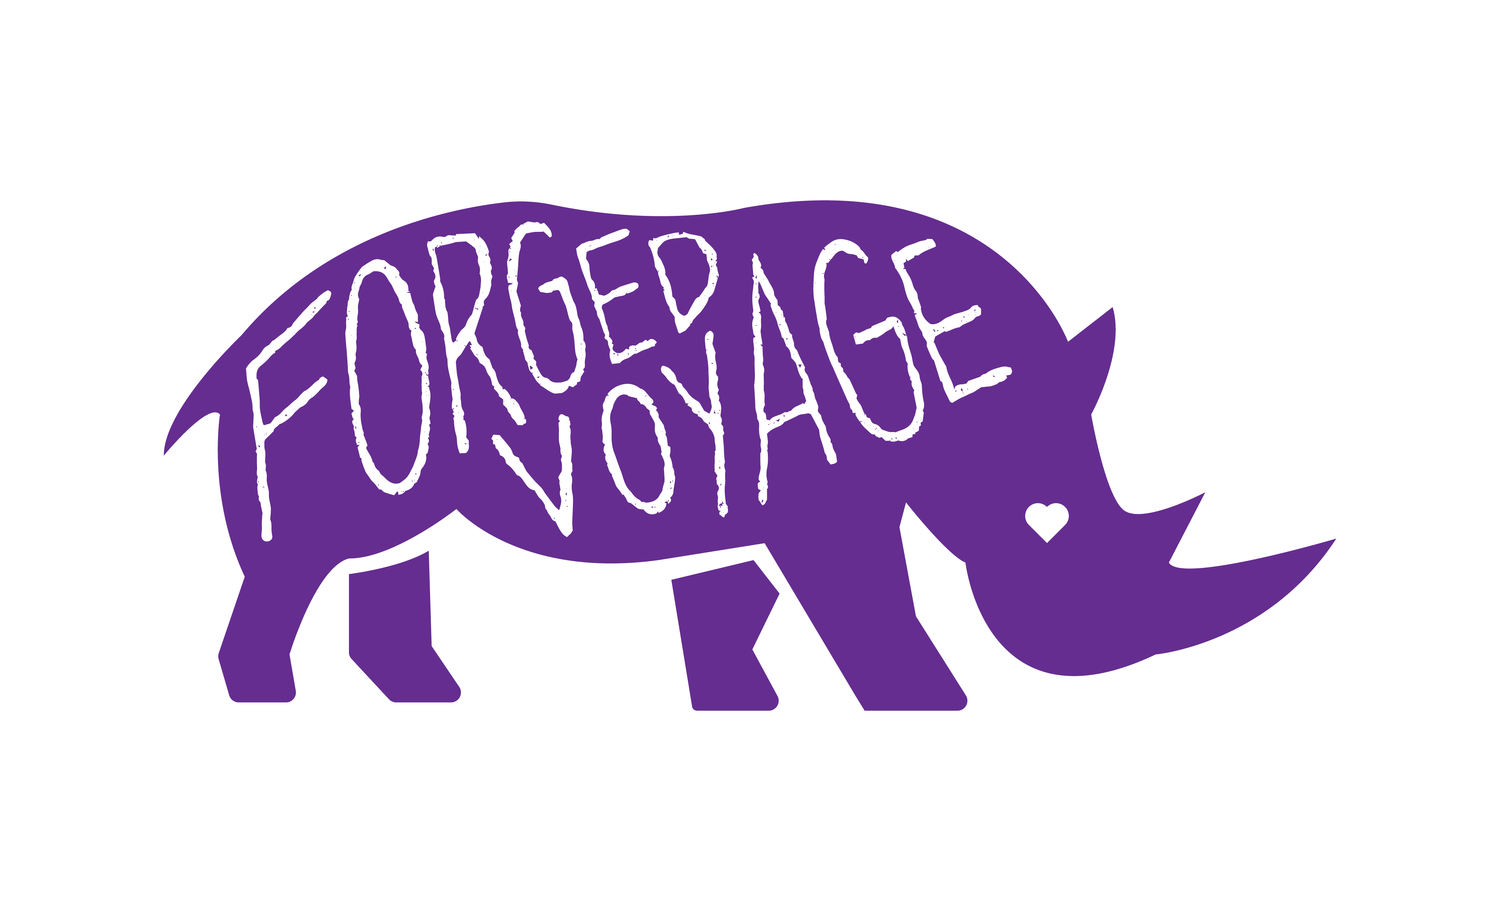 Forged Voyage